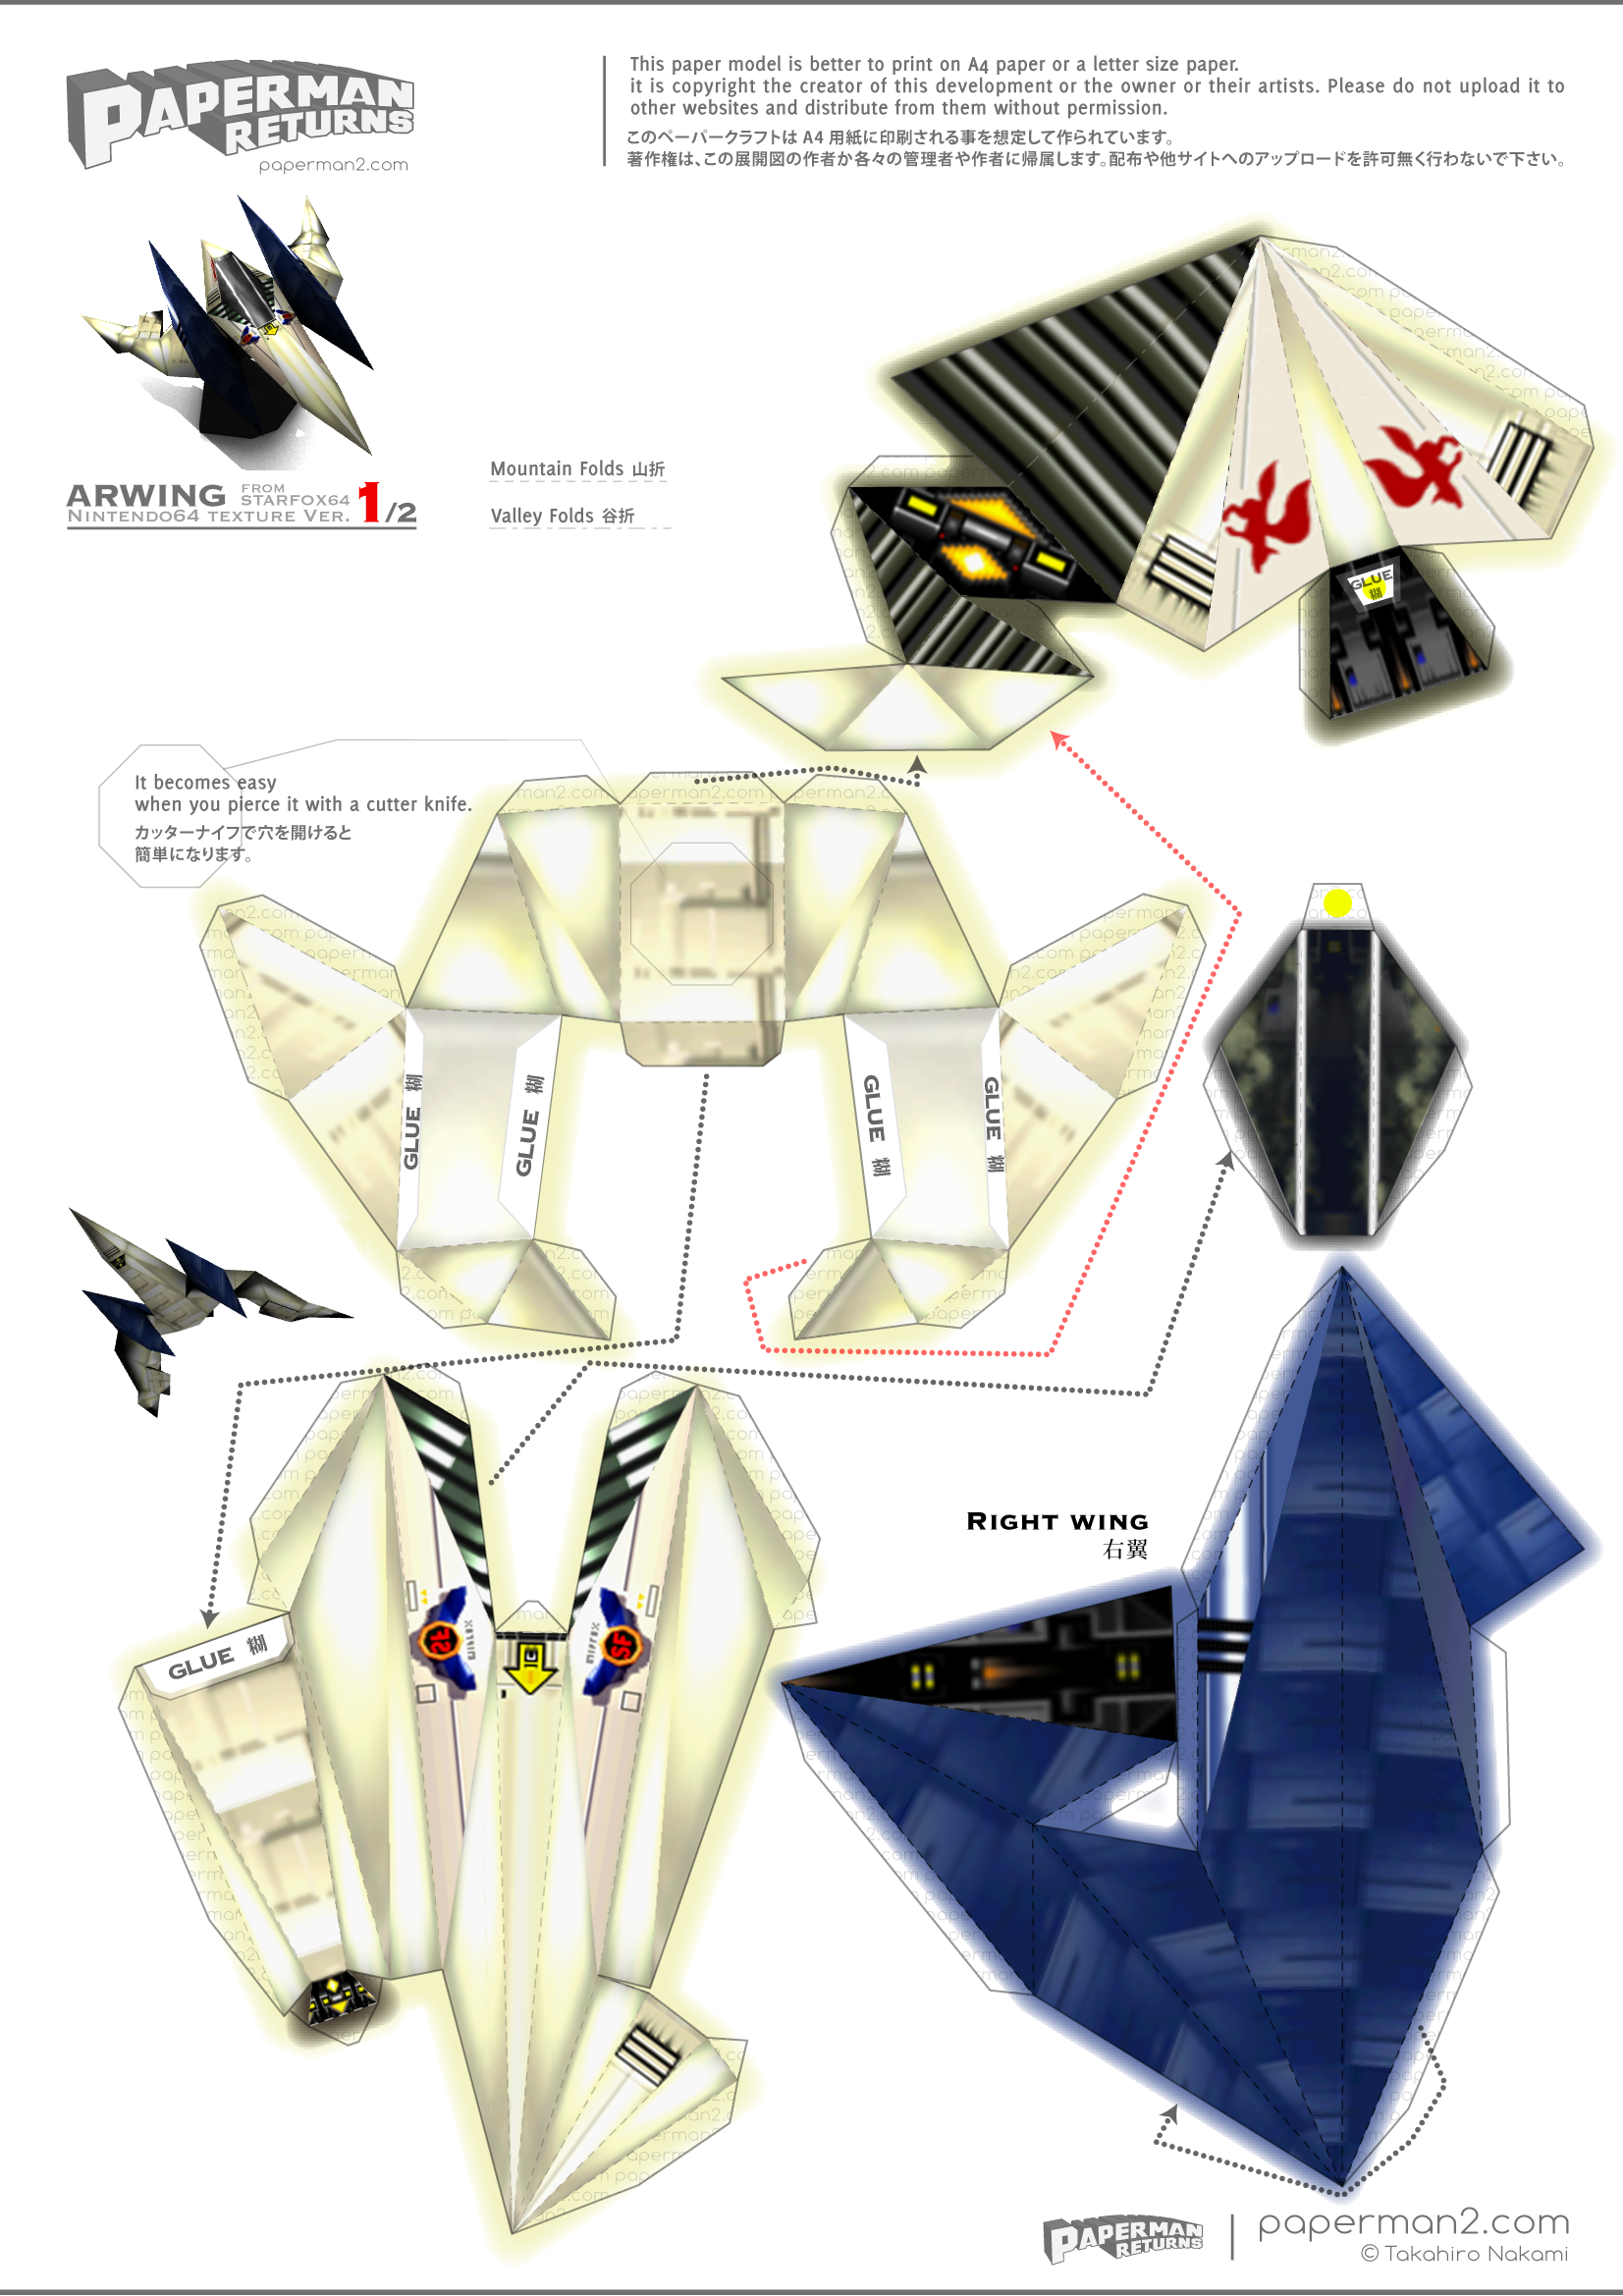 The Papercraft of starfox64 arwing 1/2pieces Nintendo64 texture ver. : スターフォックス64風アーウィンの無料ペーパークラフト展開図